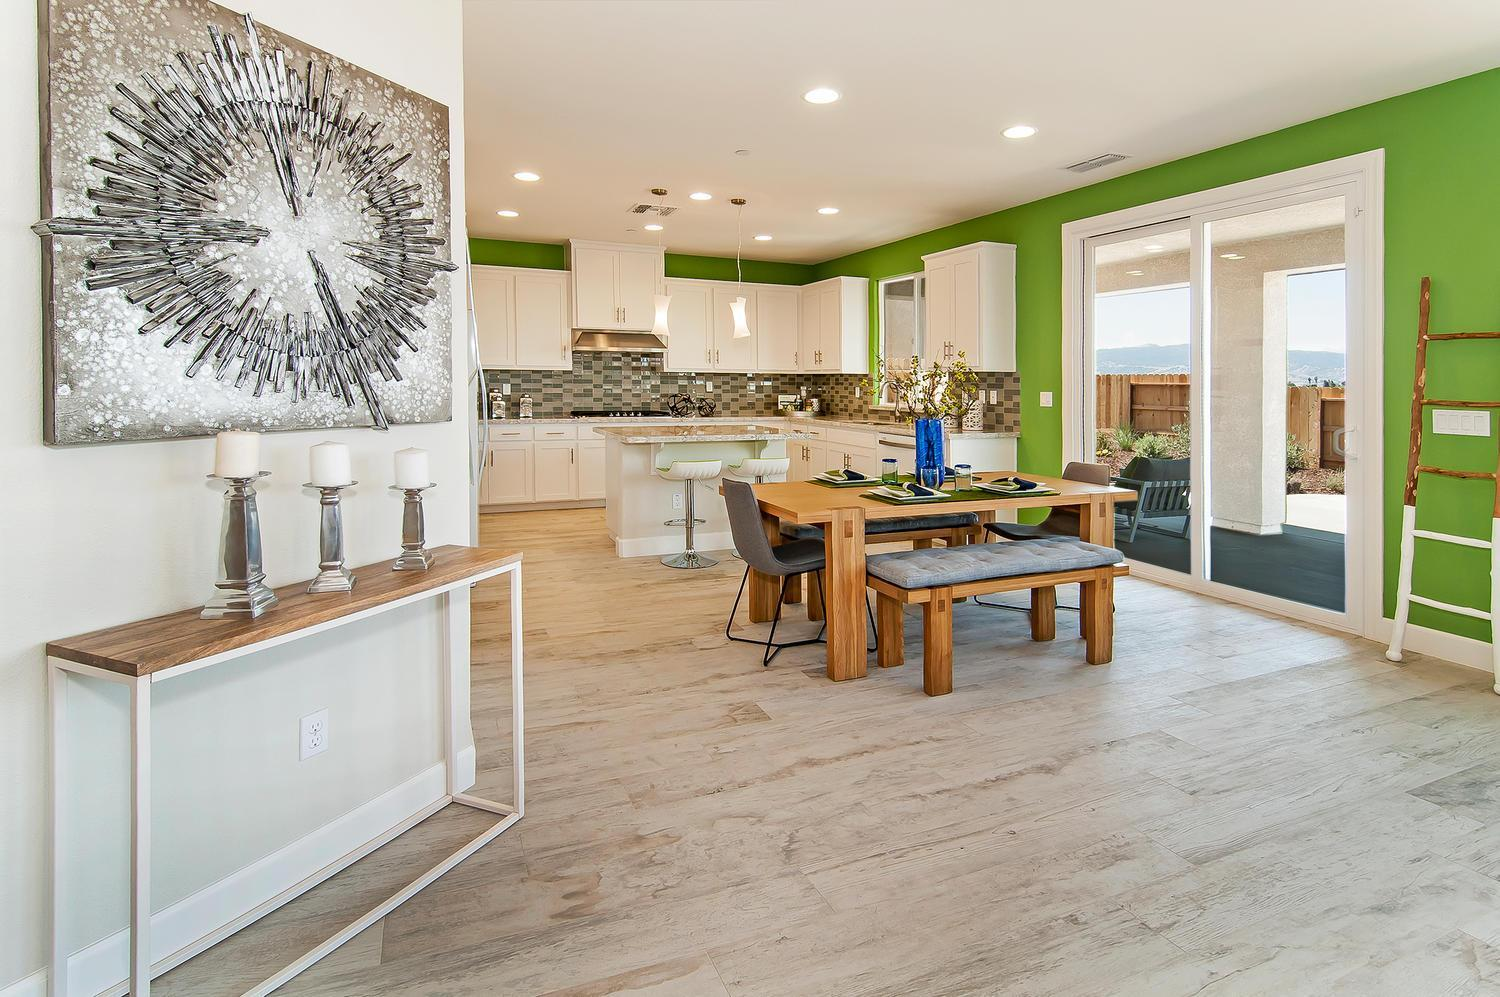 Kitchen featured in the Residence 4 By Legacy Homes in Santa Cruz, CA